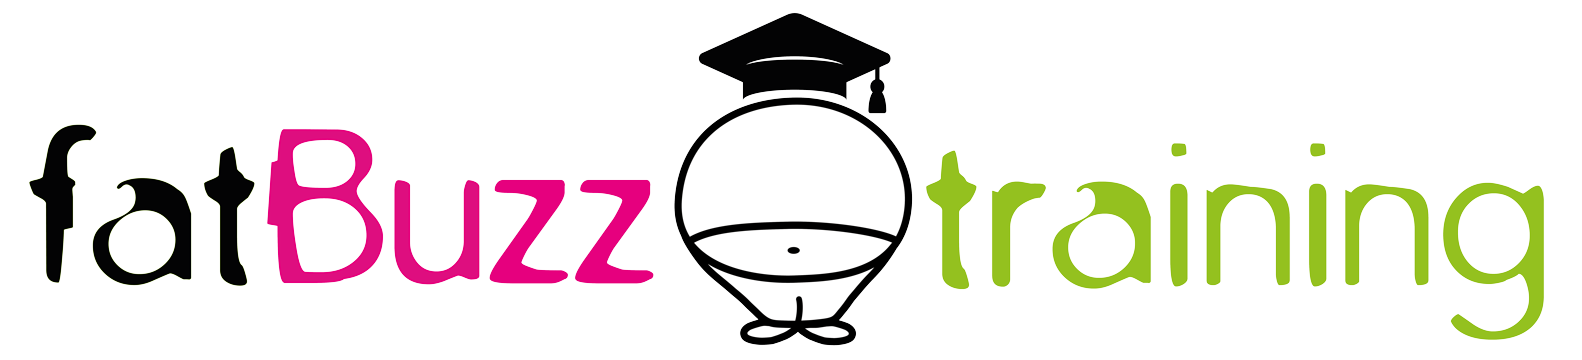 FatBuzz Training Logo